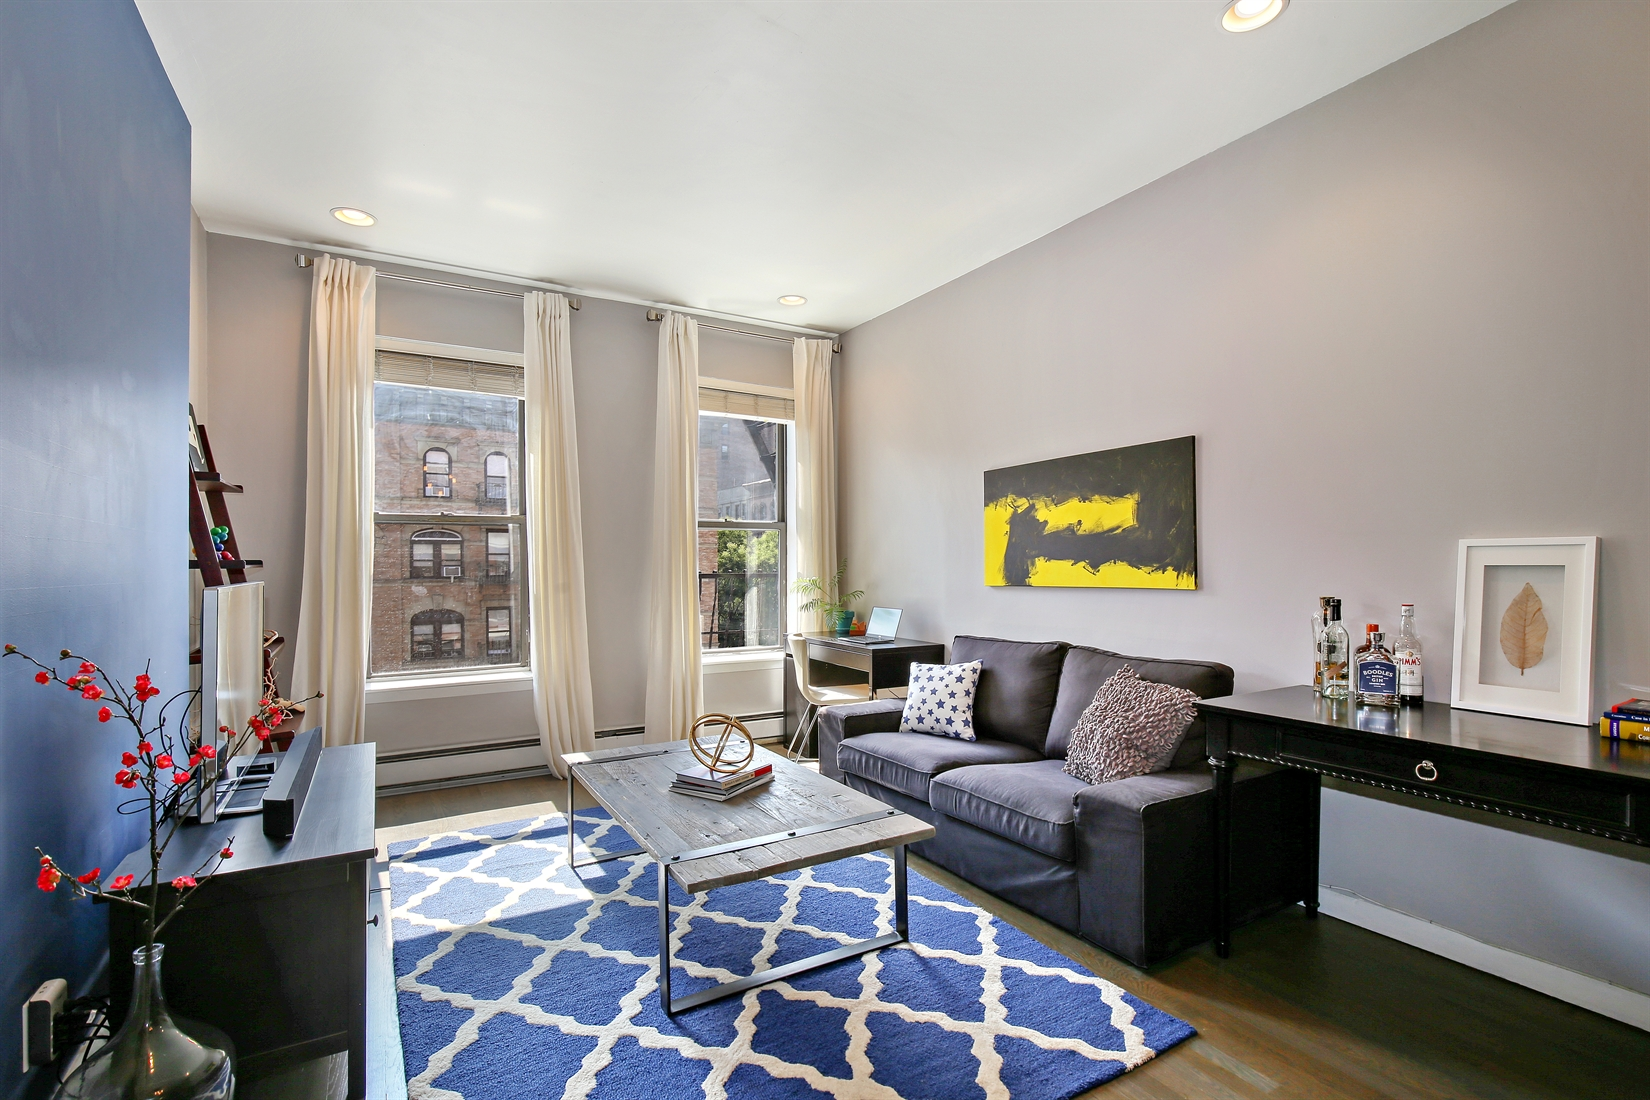 442 AMSTERDAM AVE, 4A, Bright living room